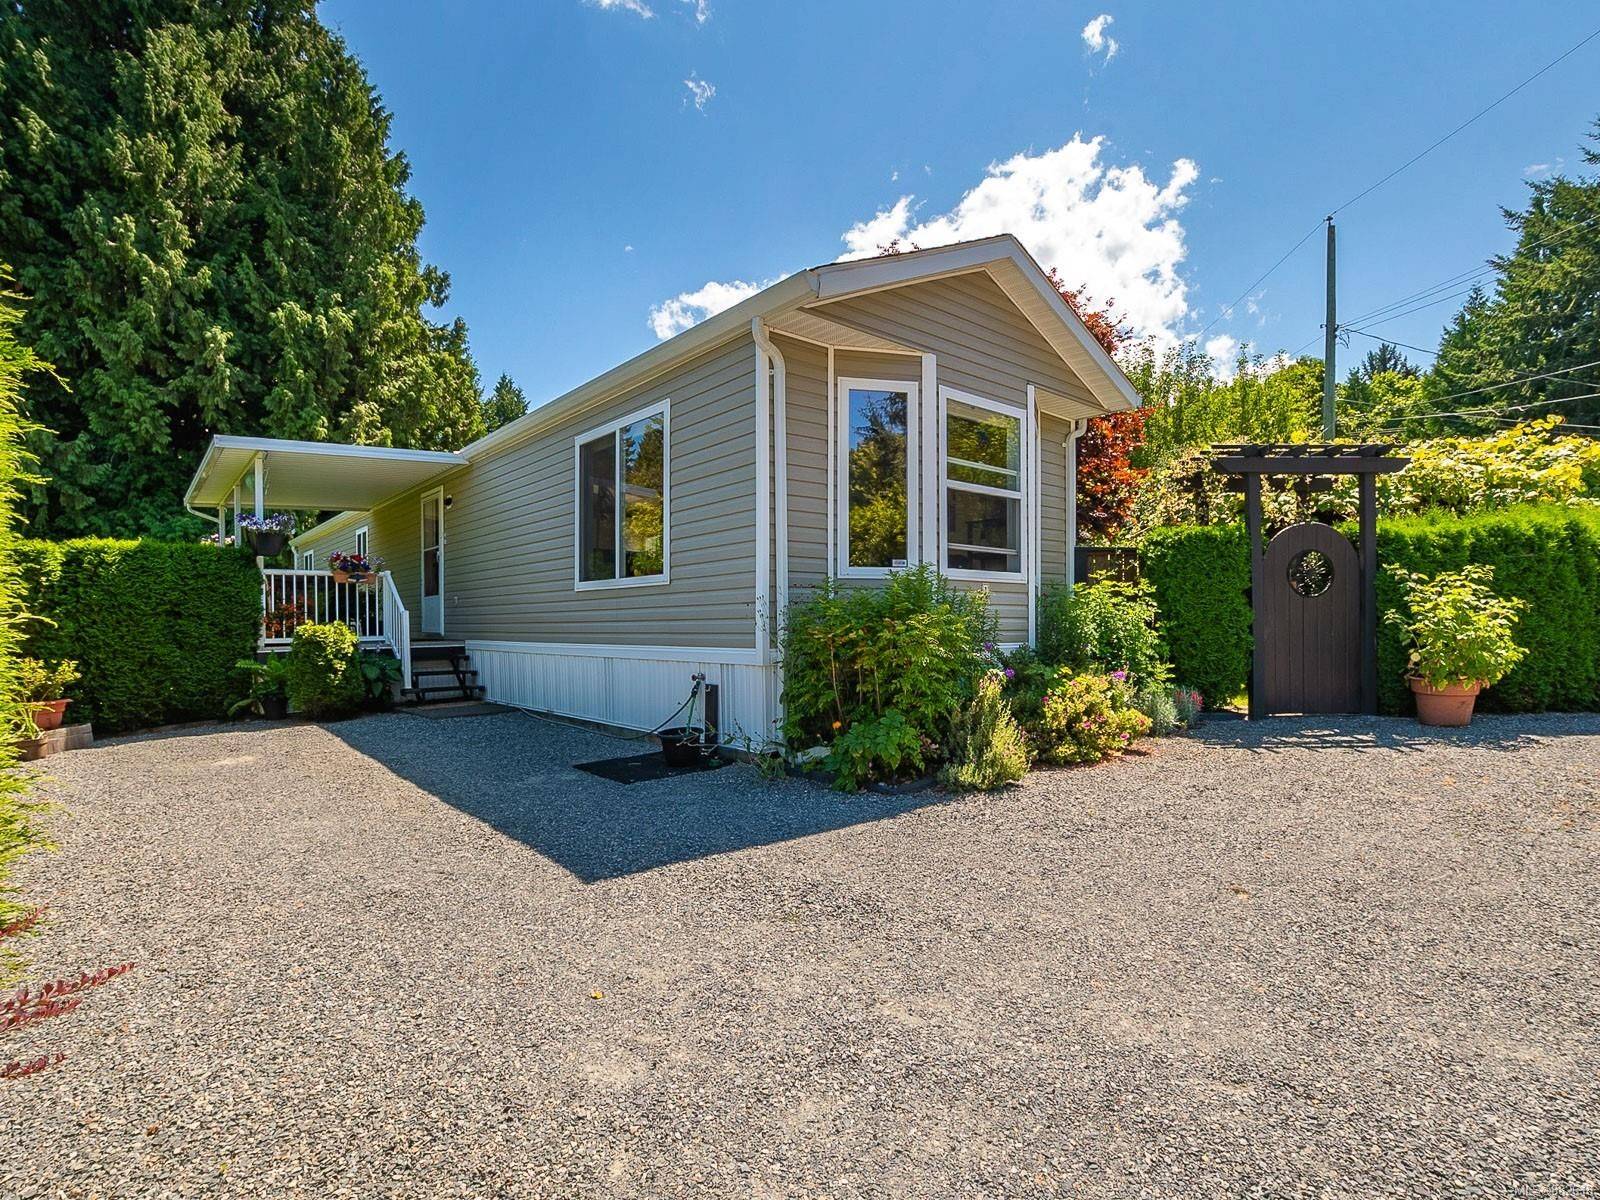 Main Photo: 1 6990 Dickinson Rd in : Na Lower Lantzville Manufactured Home for sale (Nanaimo)  : MLS®# 882618